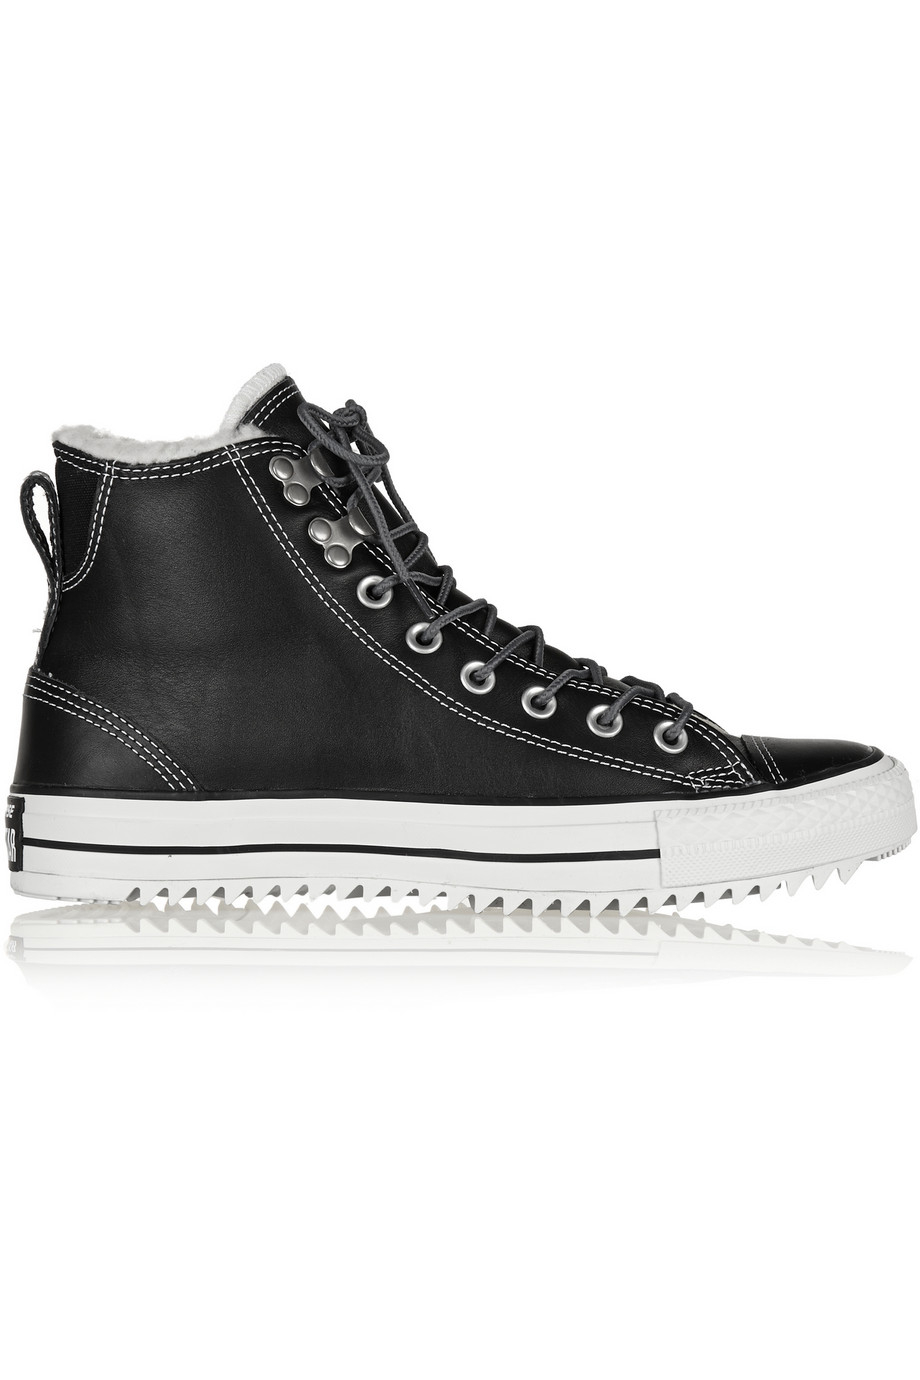 Converse Shoes Sizinf